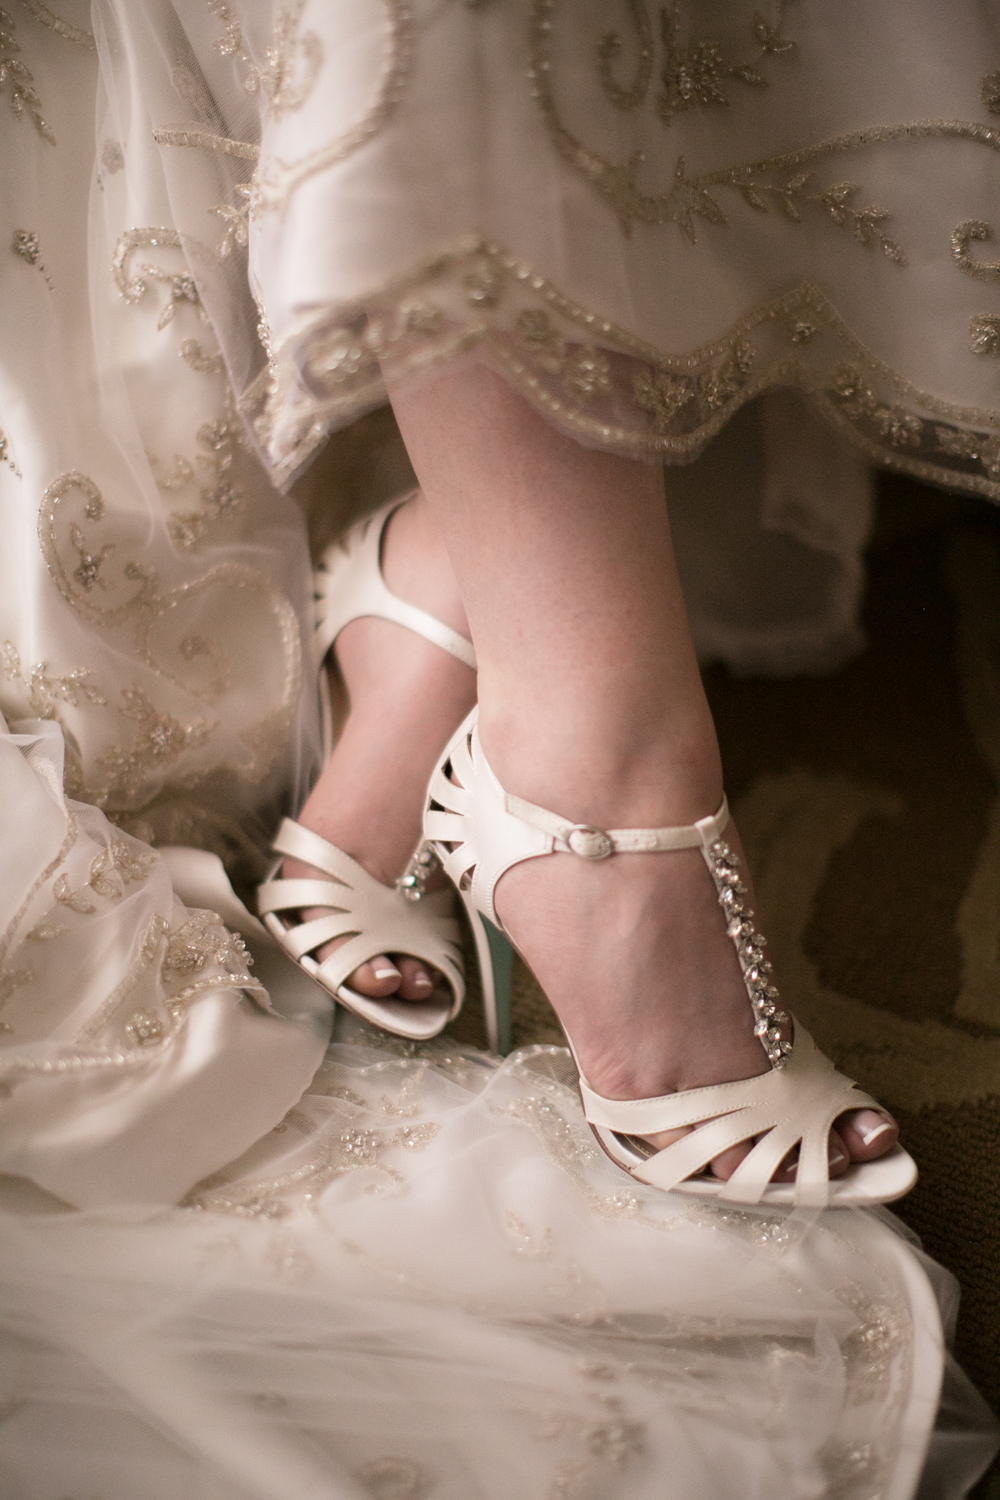 T strap vintage wedding shoes. Las Vegas Wedding Planner Andrea Eppolito  |  Wedding at The Venetian Las Vegas  |  Florals and Decor by Naakiti Floral  |  Photos by Meg Ruth